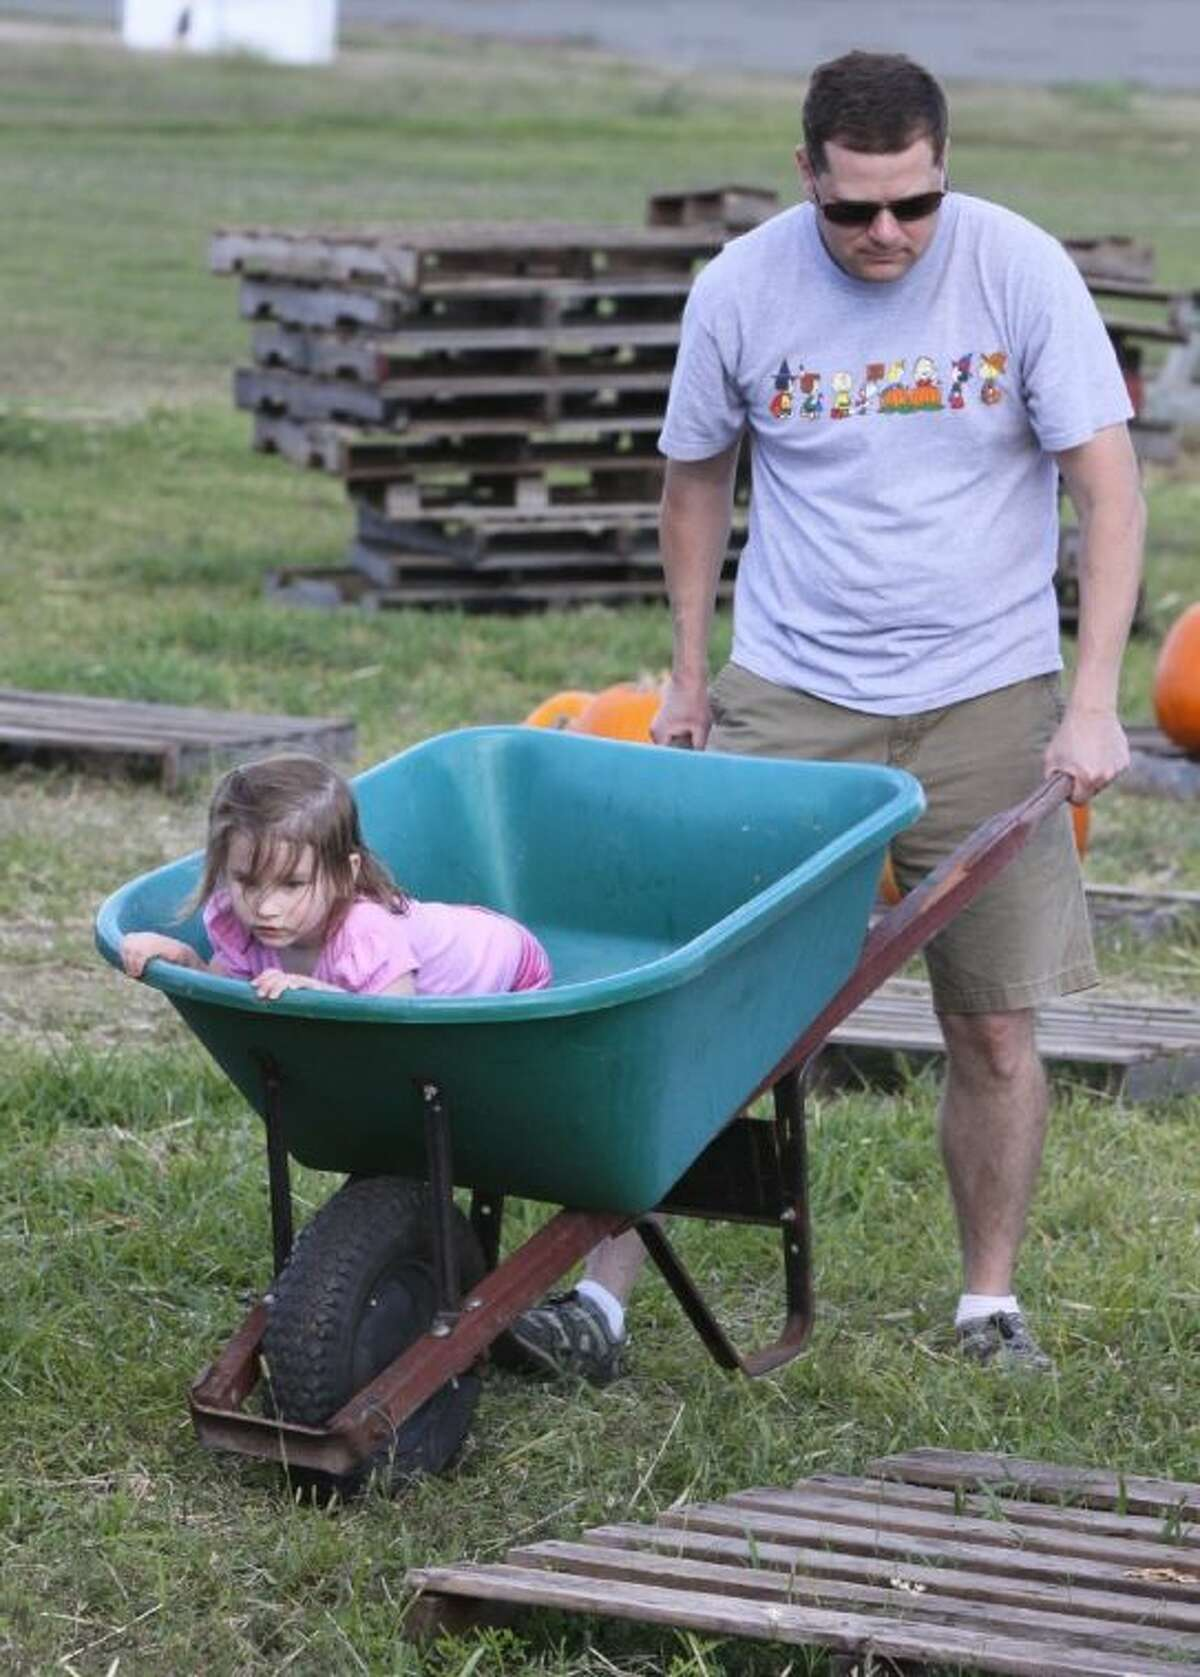 Brian White gets some help from his daughter Abby, 3, in picking out a pumpkin at the Pumpkin Patch at Holy Cross Episcopal Church in Sugar Land on Saturday, Oct. 26.